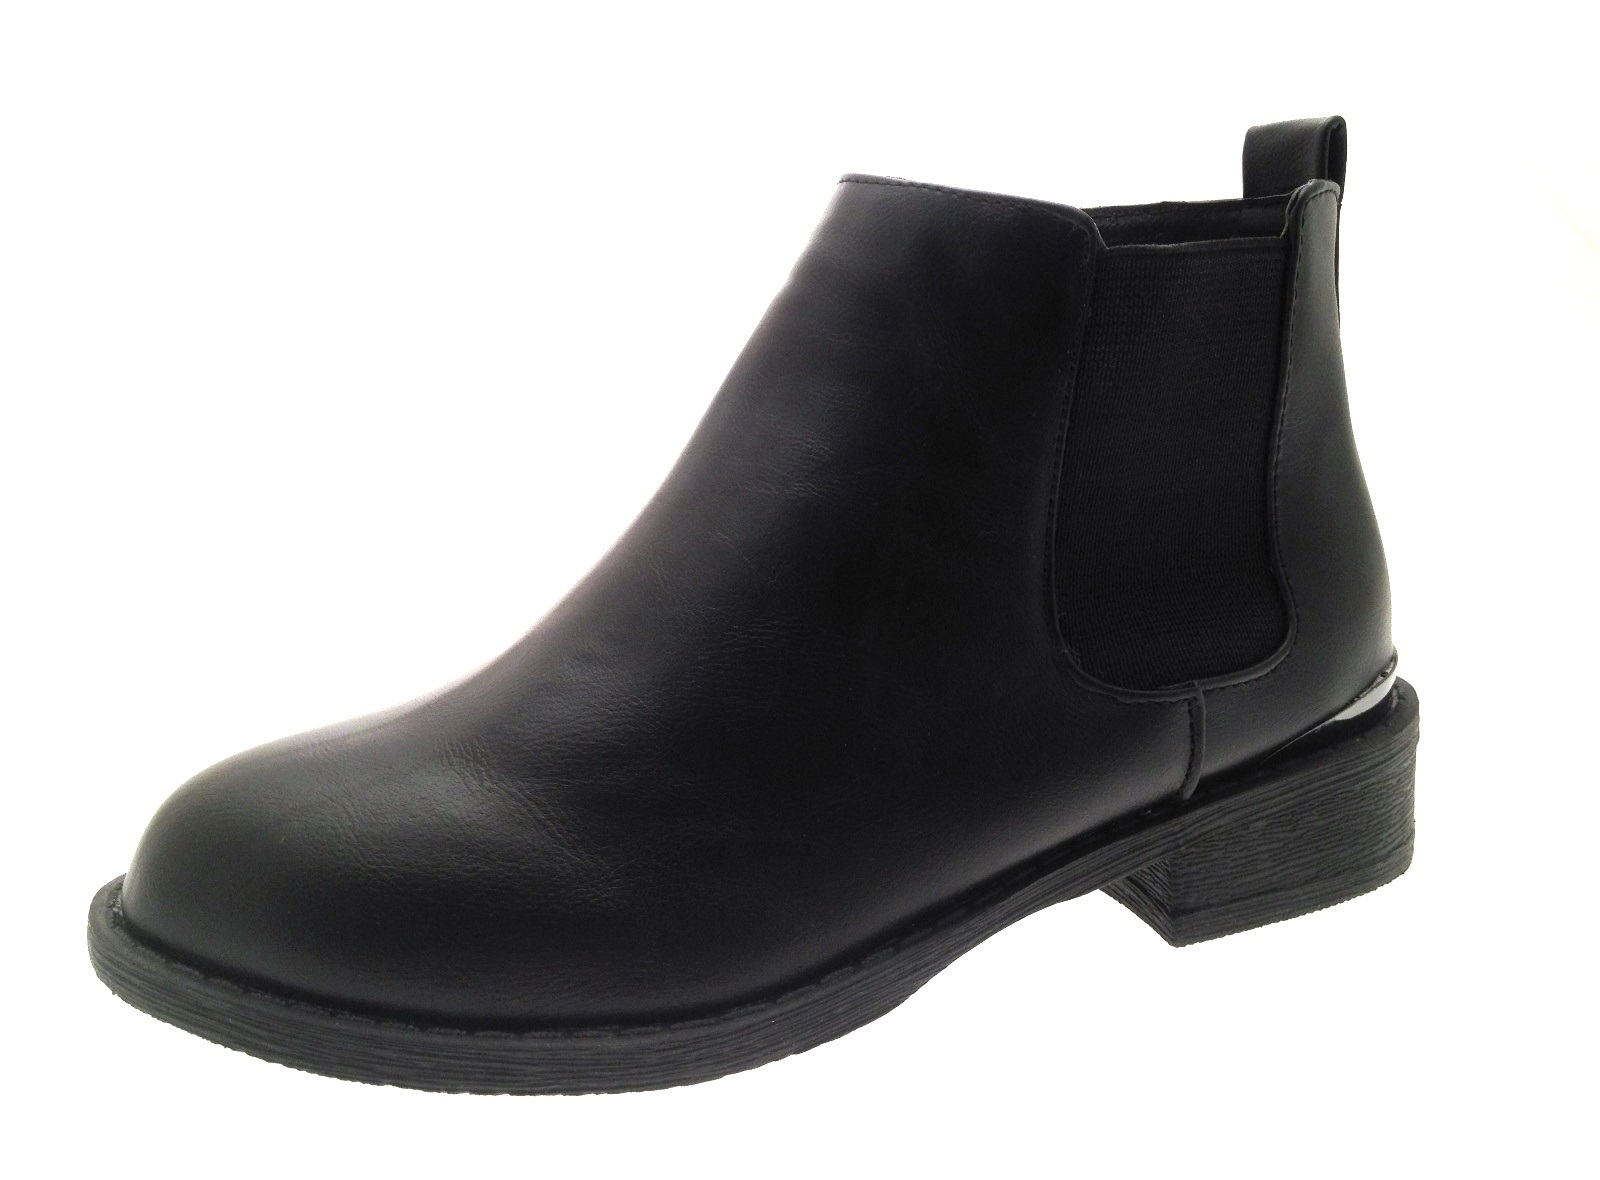 Buy girls leather school shoes cheap,up